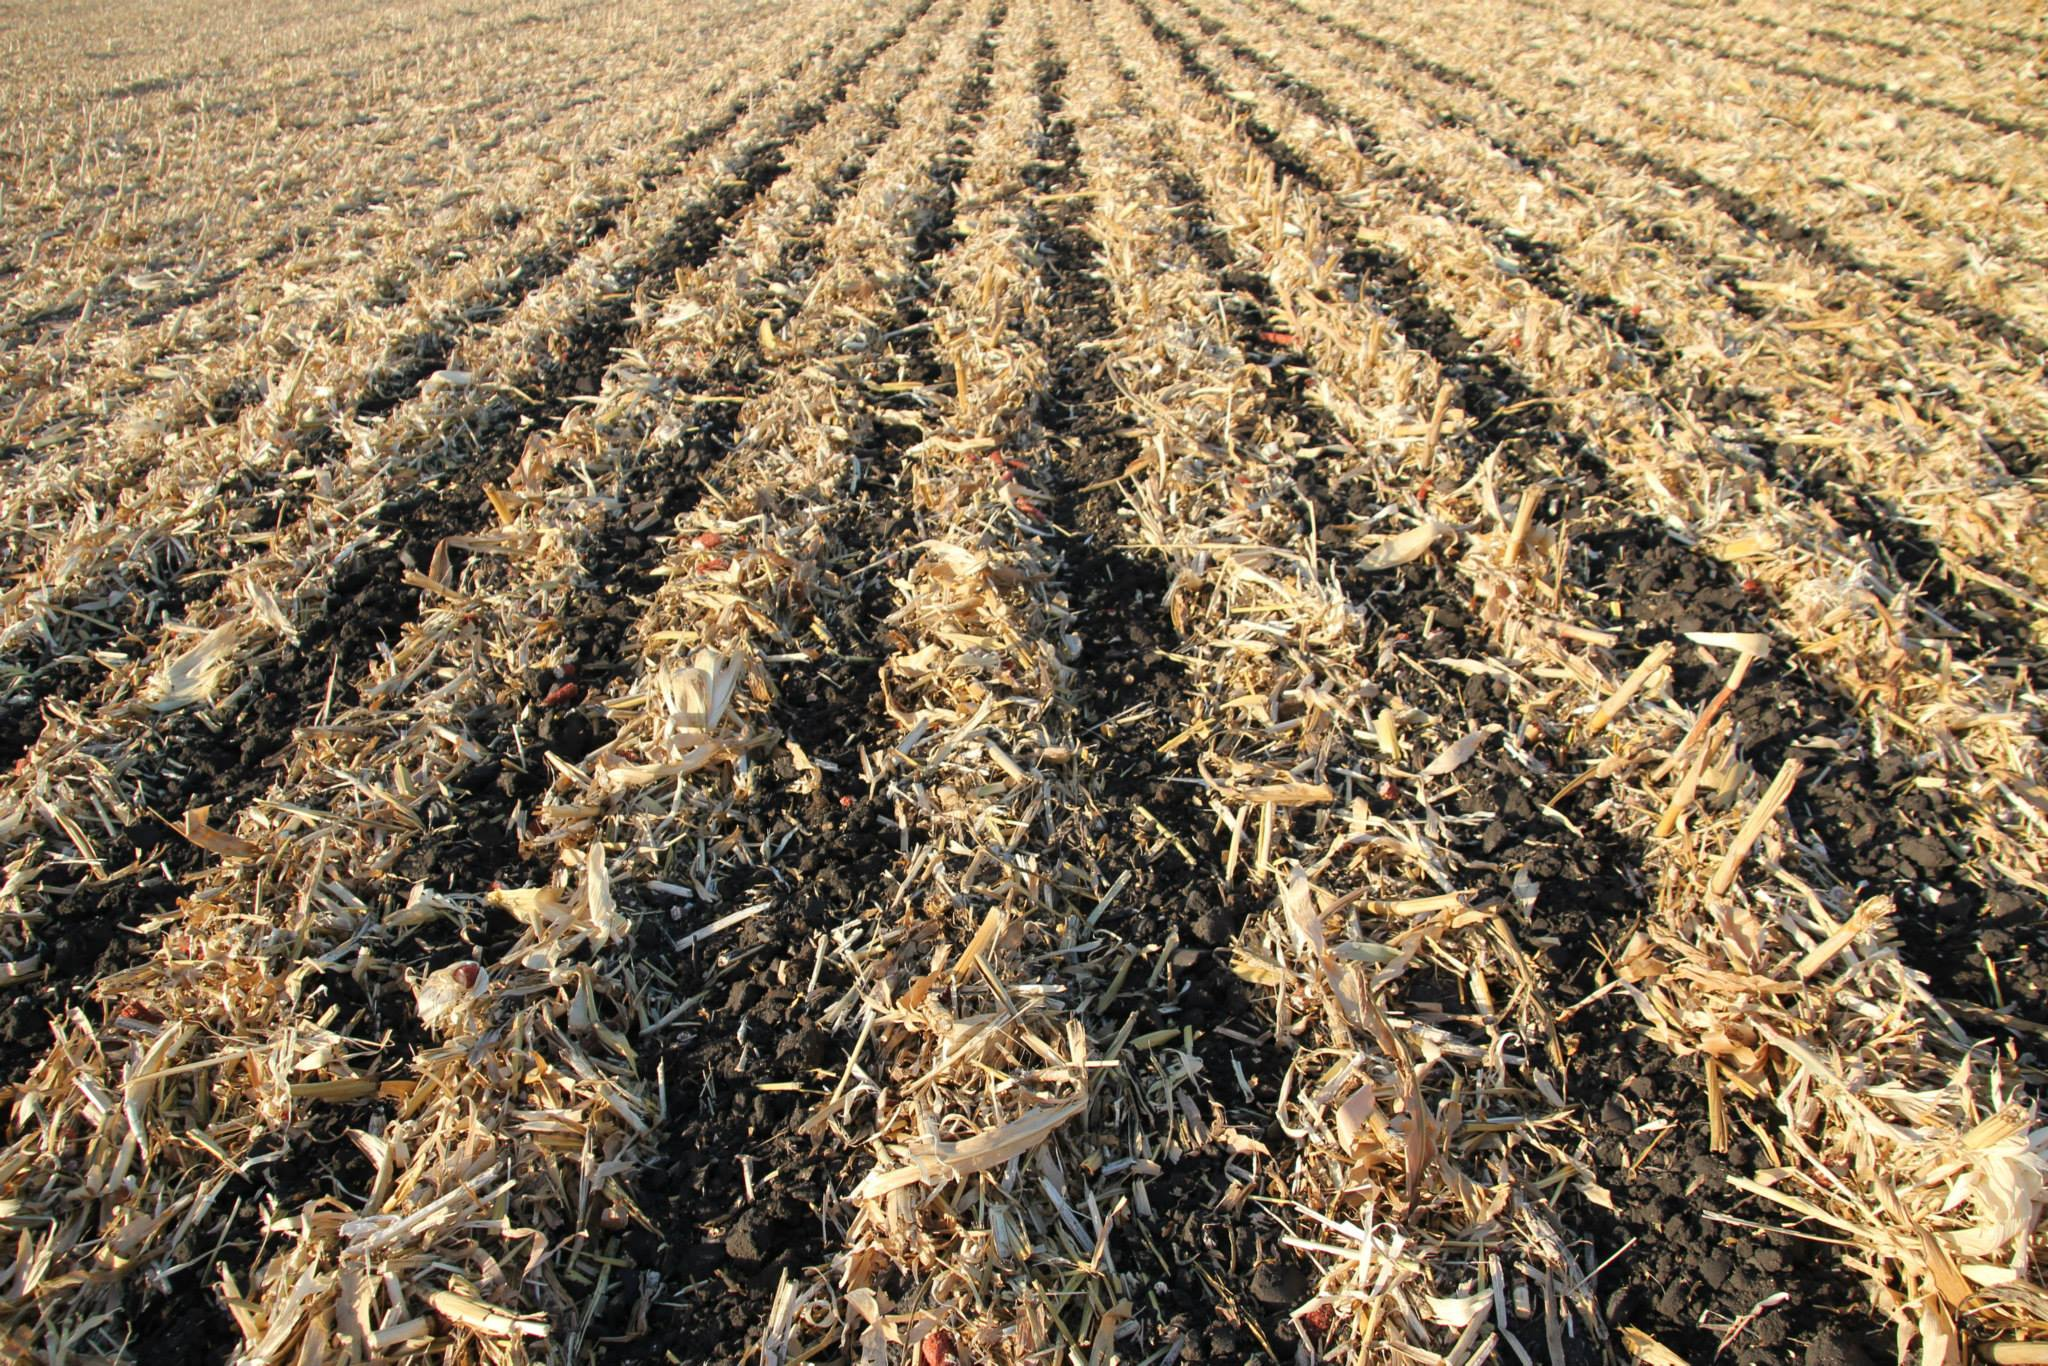 Ryberg_Farm_Strip_Till_Zones.jpg